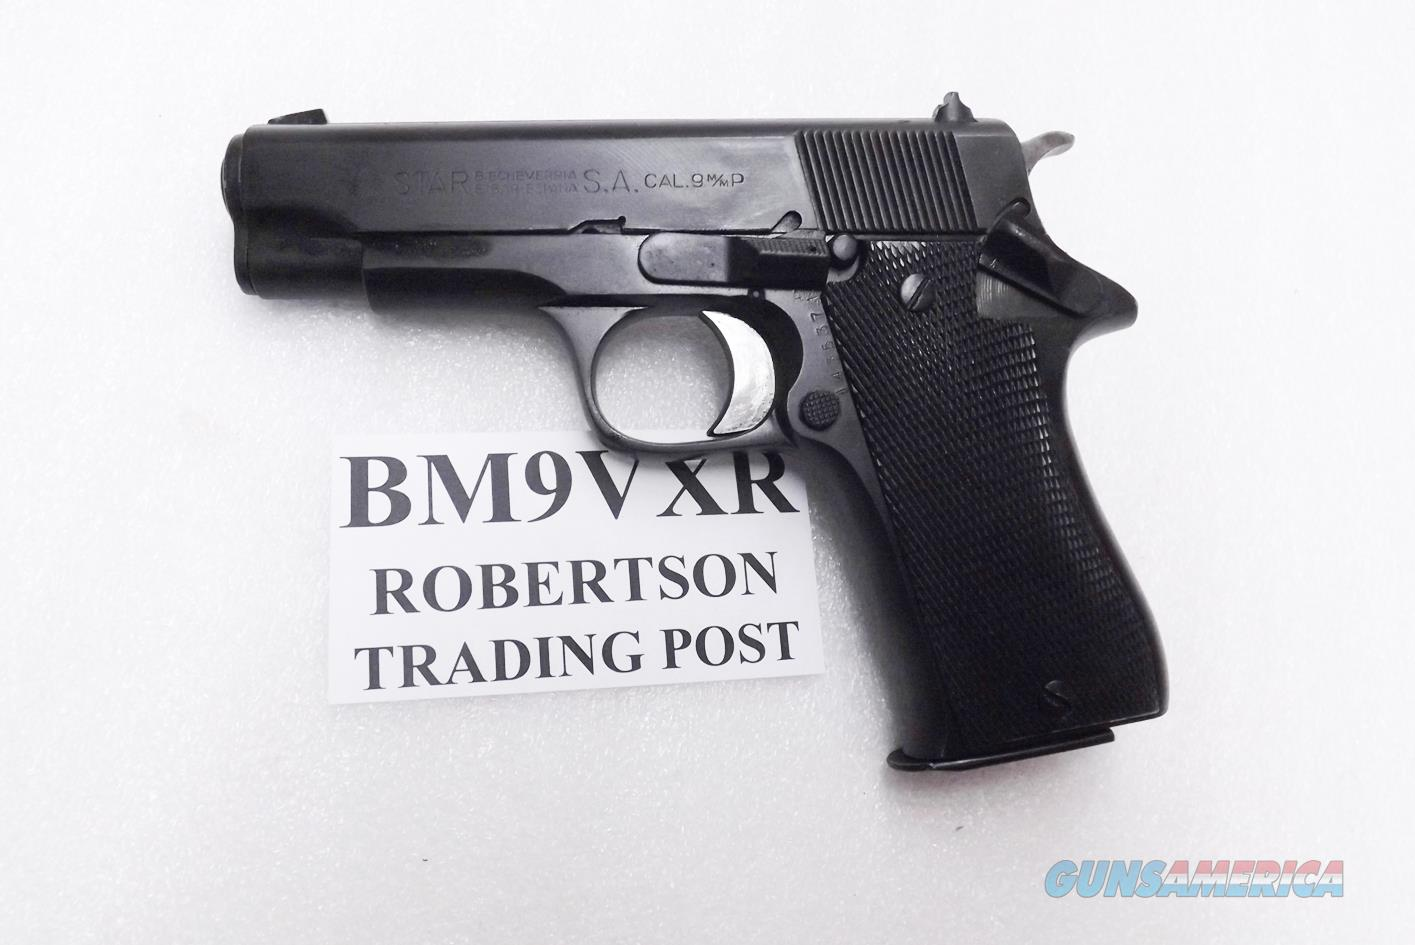 hight resolution of star spain 9mm model bm 9 compact spanish guardia 1970s dura coat refinish vg exc 3 3 4 inch pd size colt defender ancestor steel 9 shot bm9 bm 9 spain